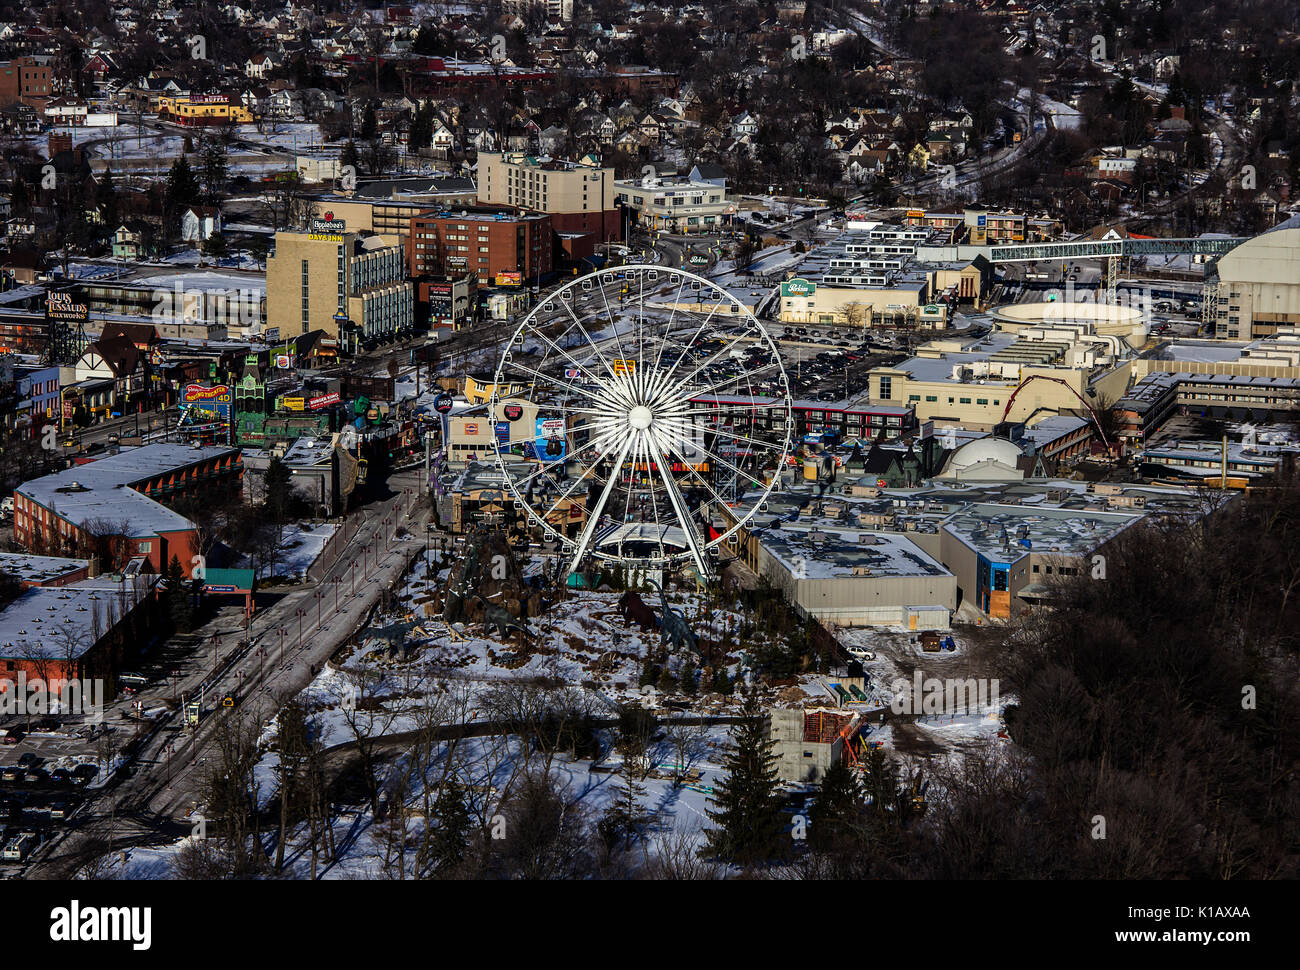 Niagara Falls; Ontario; Canada; View of the city of Niagara falls City and Sky Wheel ferris wheel, wintera - Stock Image